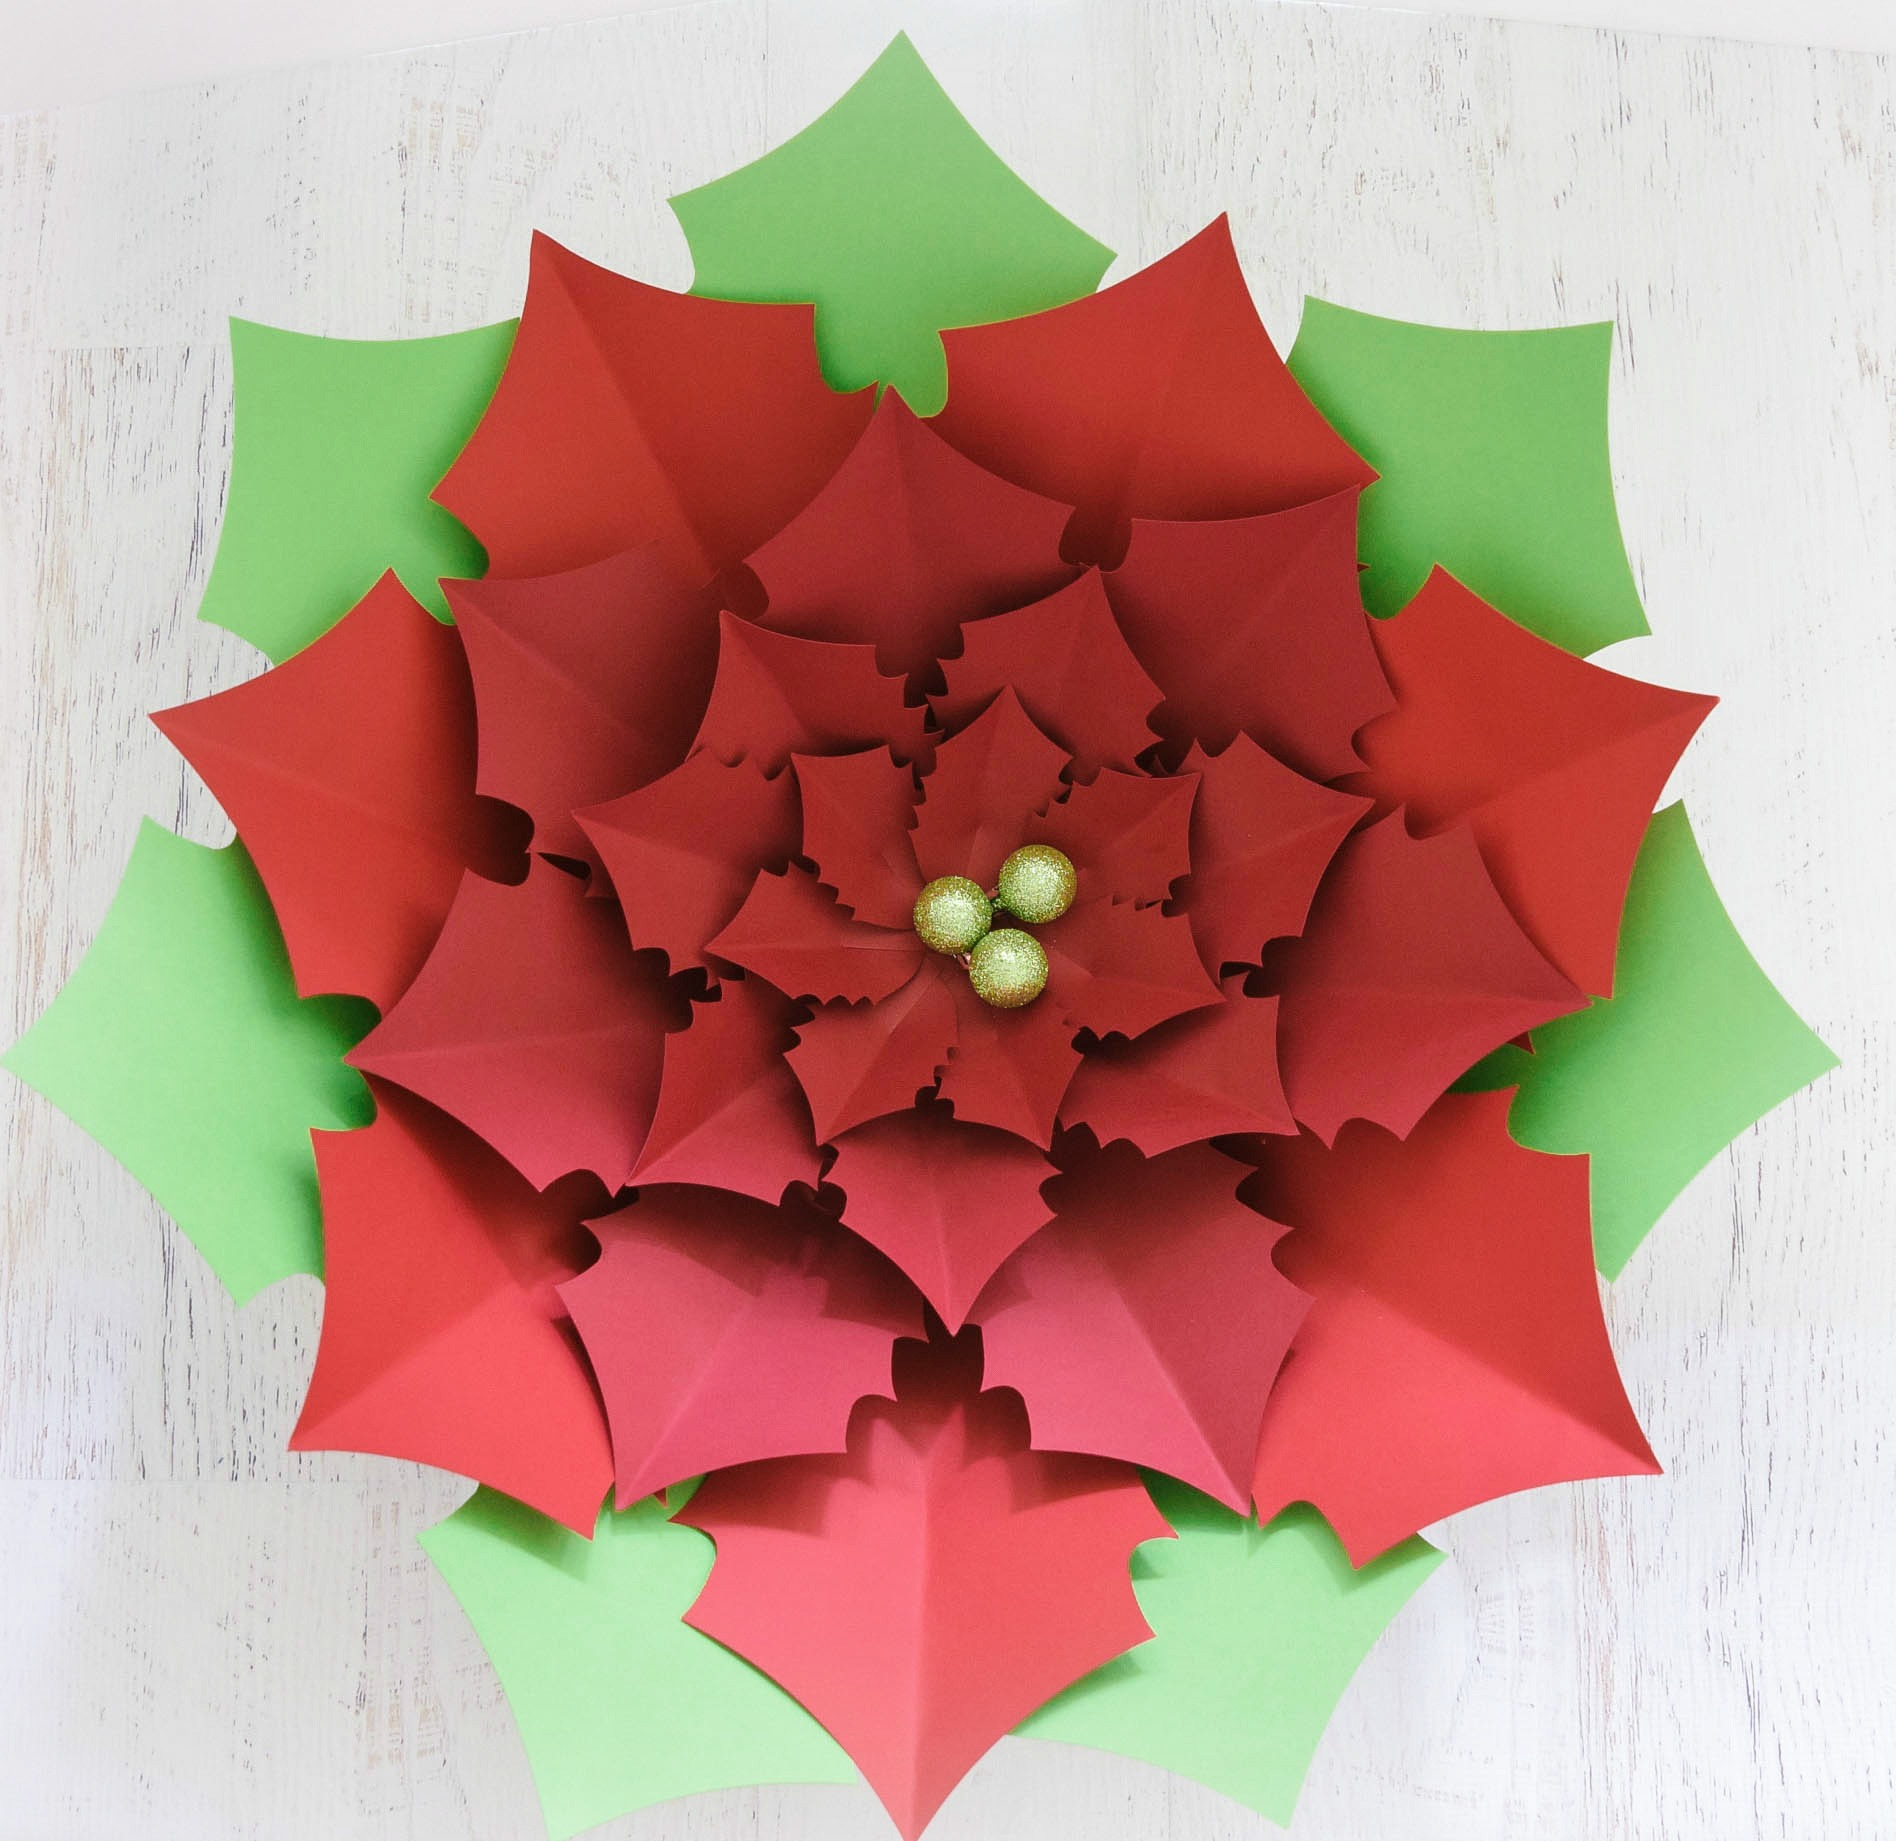 13 - Origami Poinsettia 014 | RoniJJ | Flickr | 1841x1896